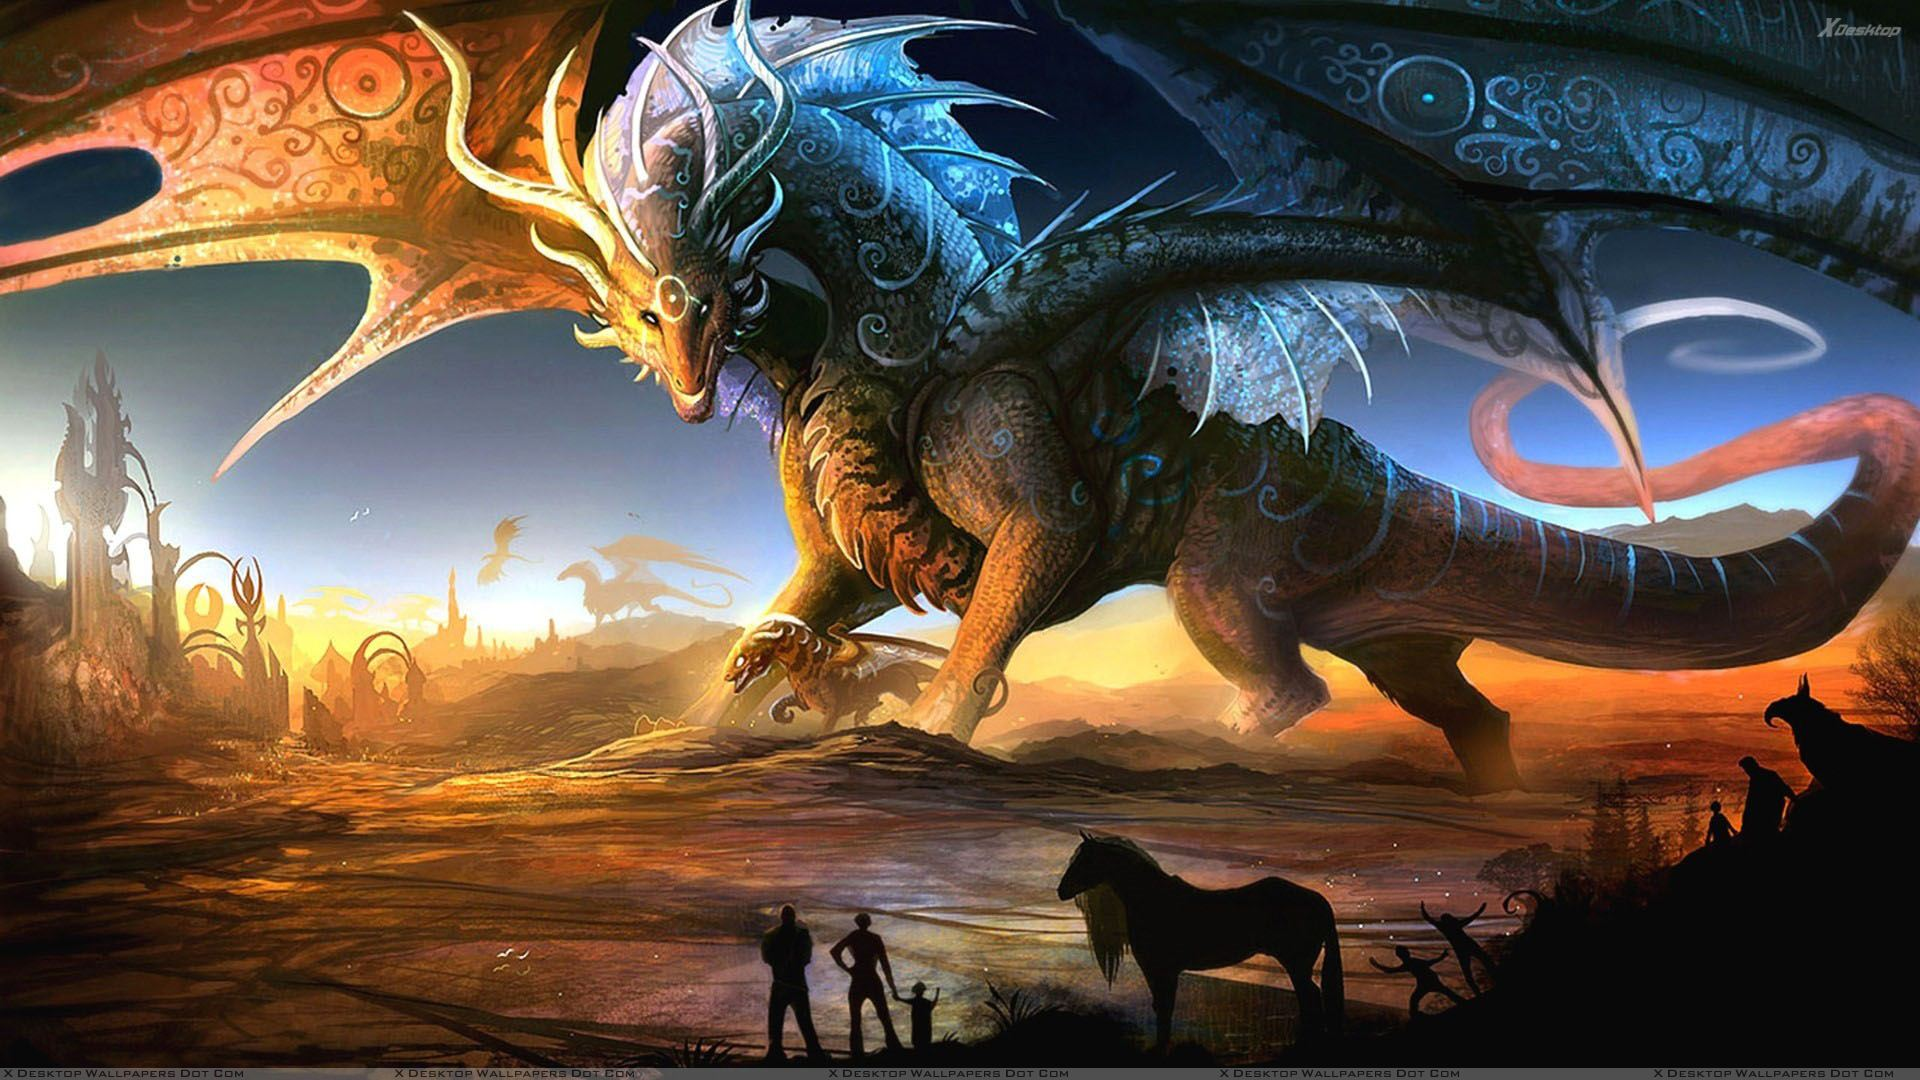 We collect best 3D Dragon Fantasy HD Wallpapers for you over the internet. Find 3D Dragon Fantasy HD Wallpapers available in different resolution and sizes ...